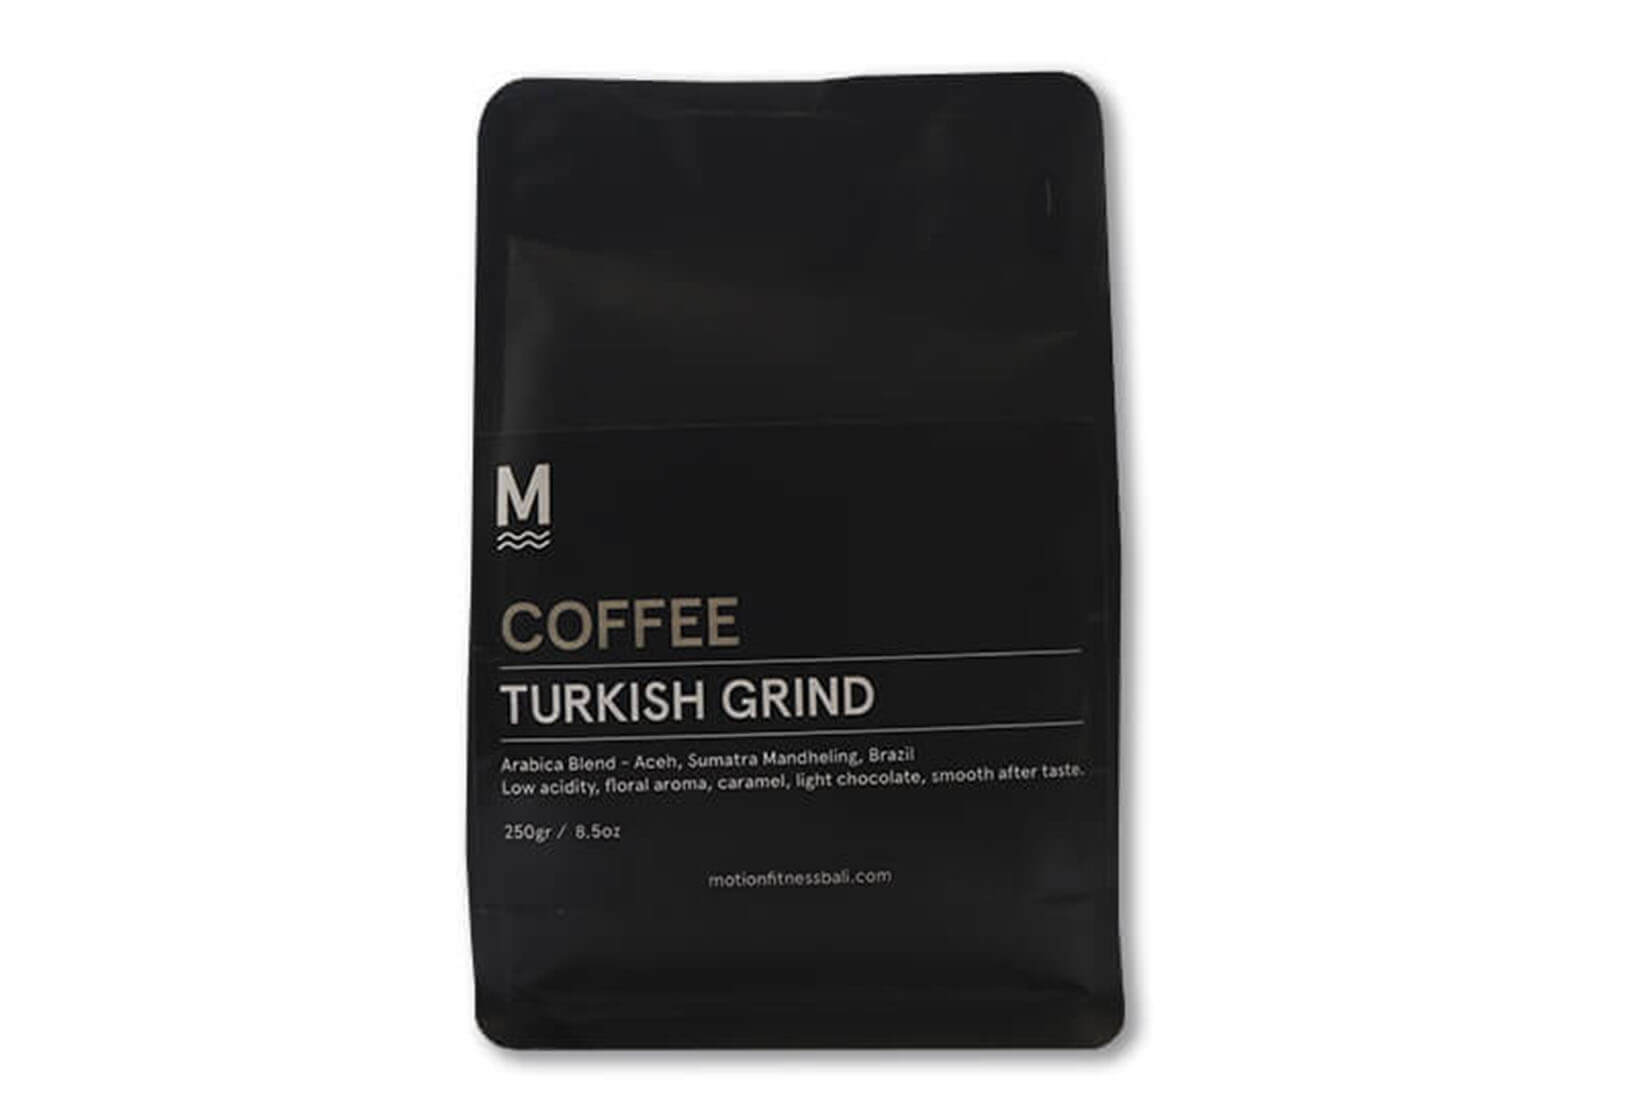 turkish-grind-coffee-motion-store